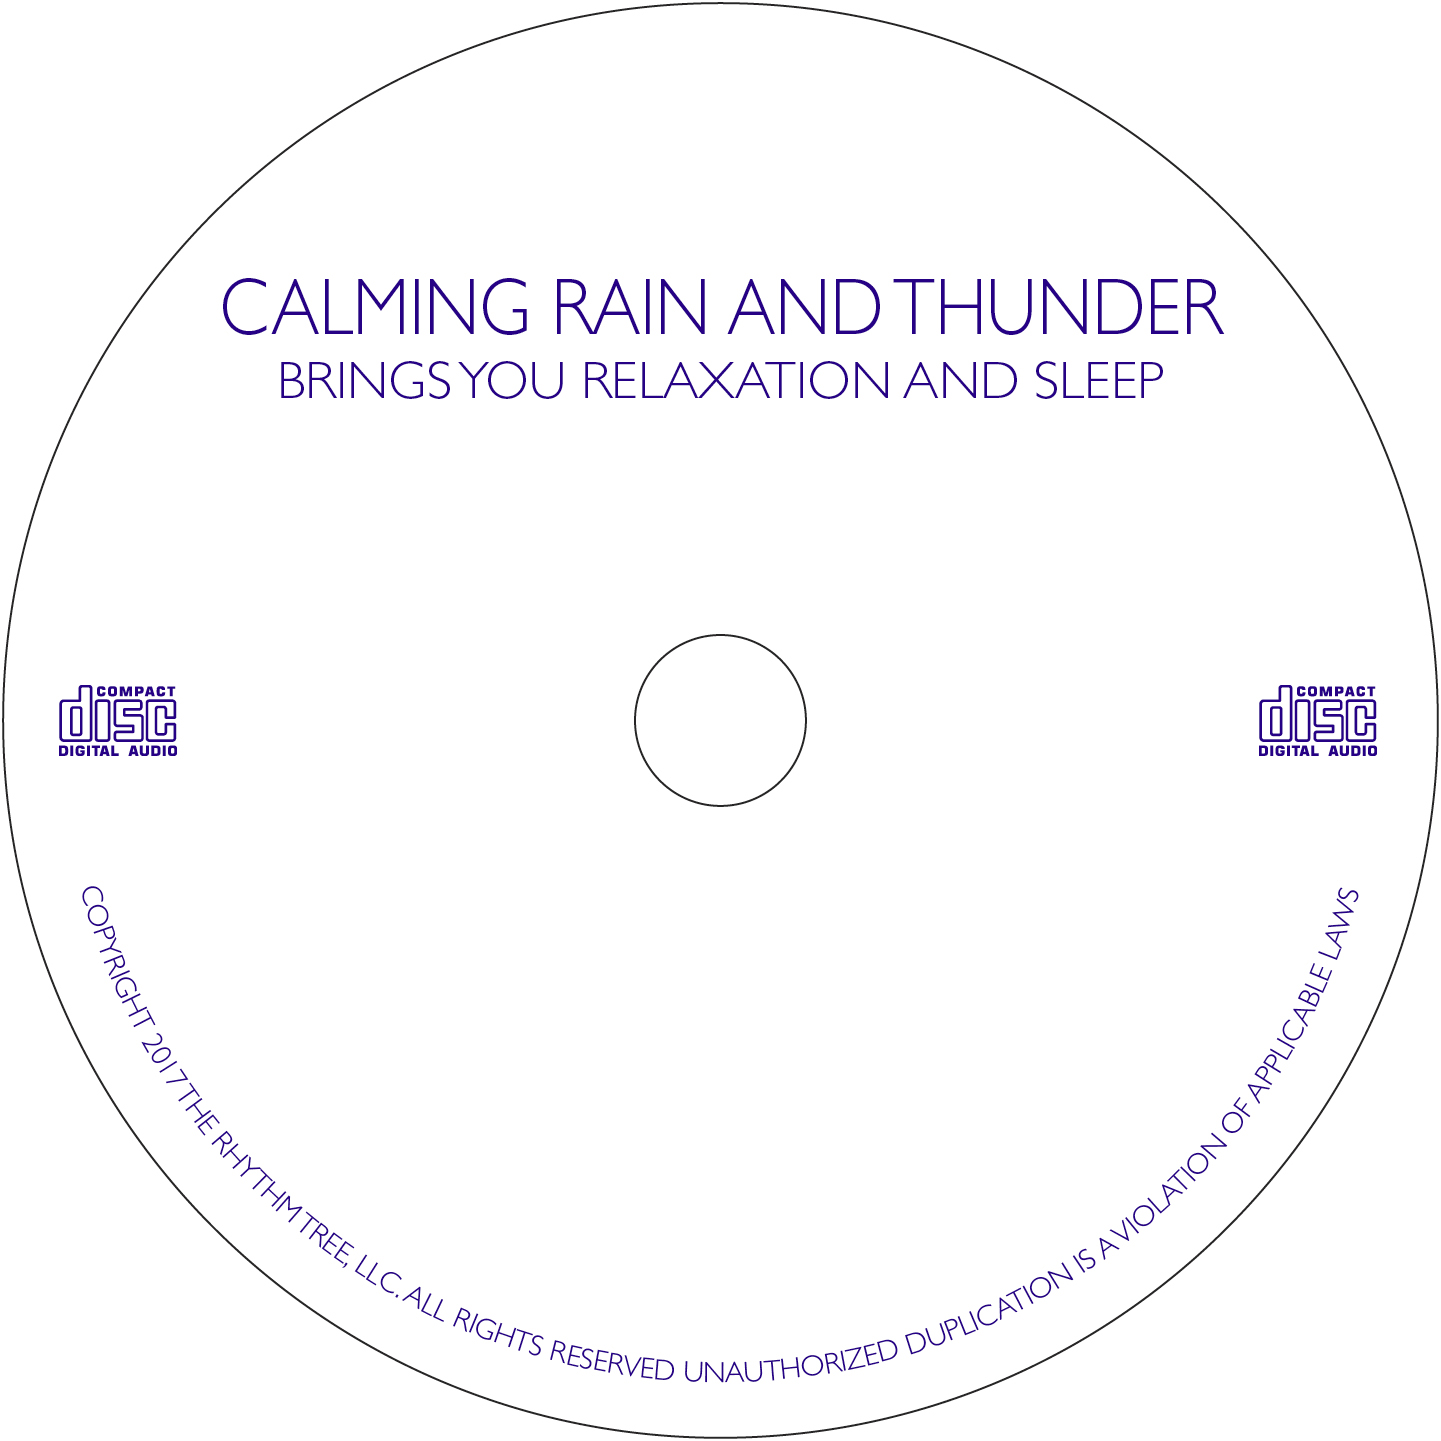 Calming Rain & Distant Thunder - Instant mp3 Download - Restful Sounds